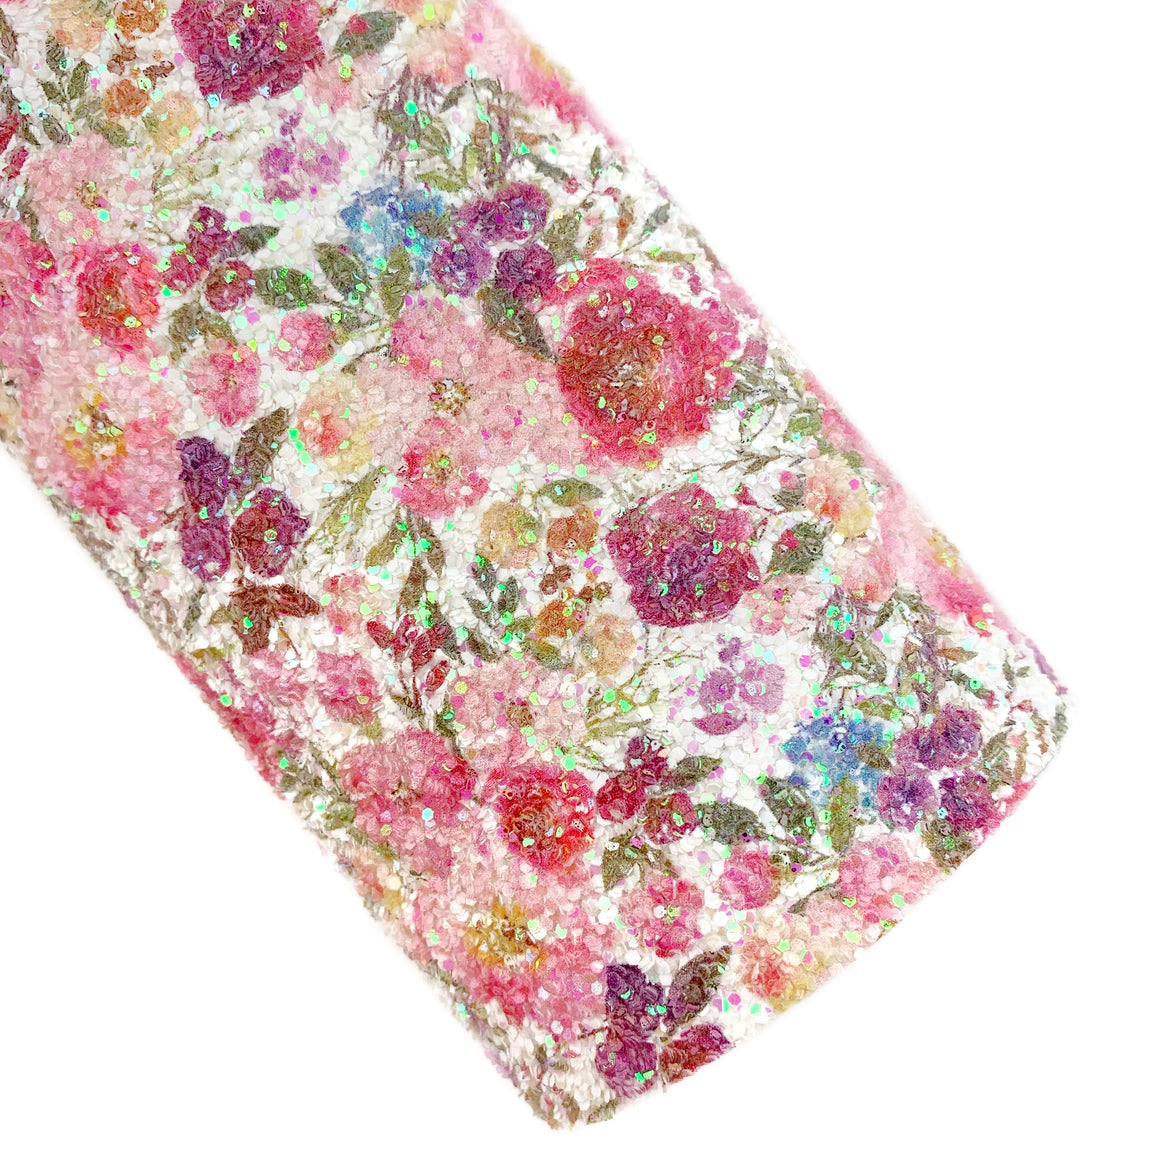 Stop to Smell the Flowers Iridescent Chunky Glitter